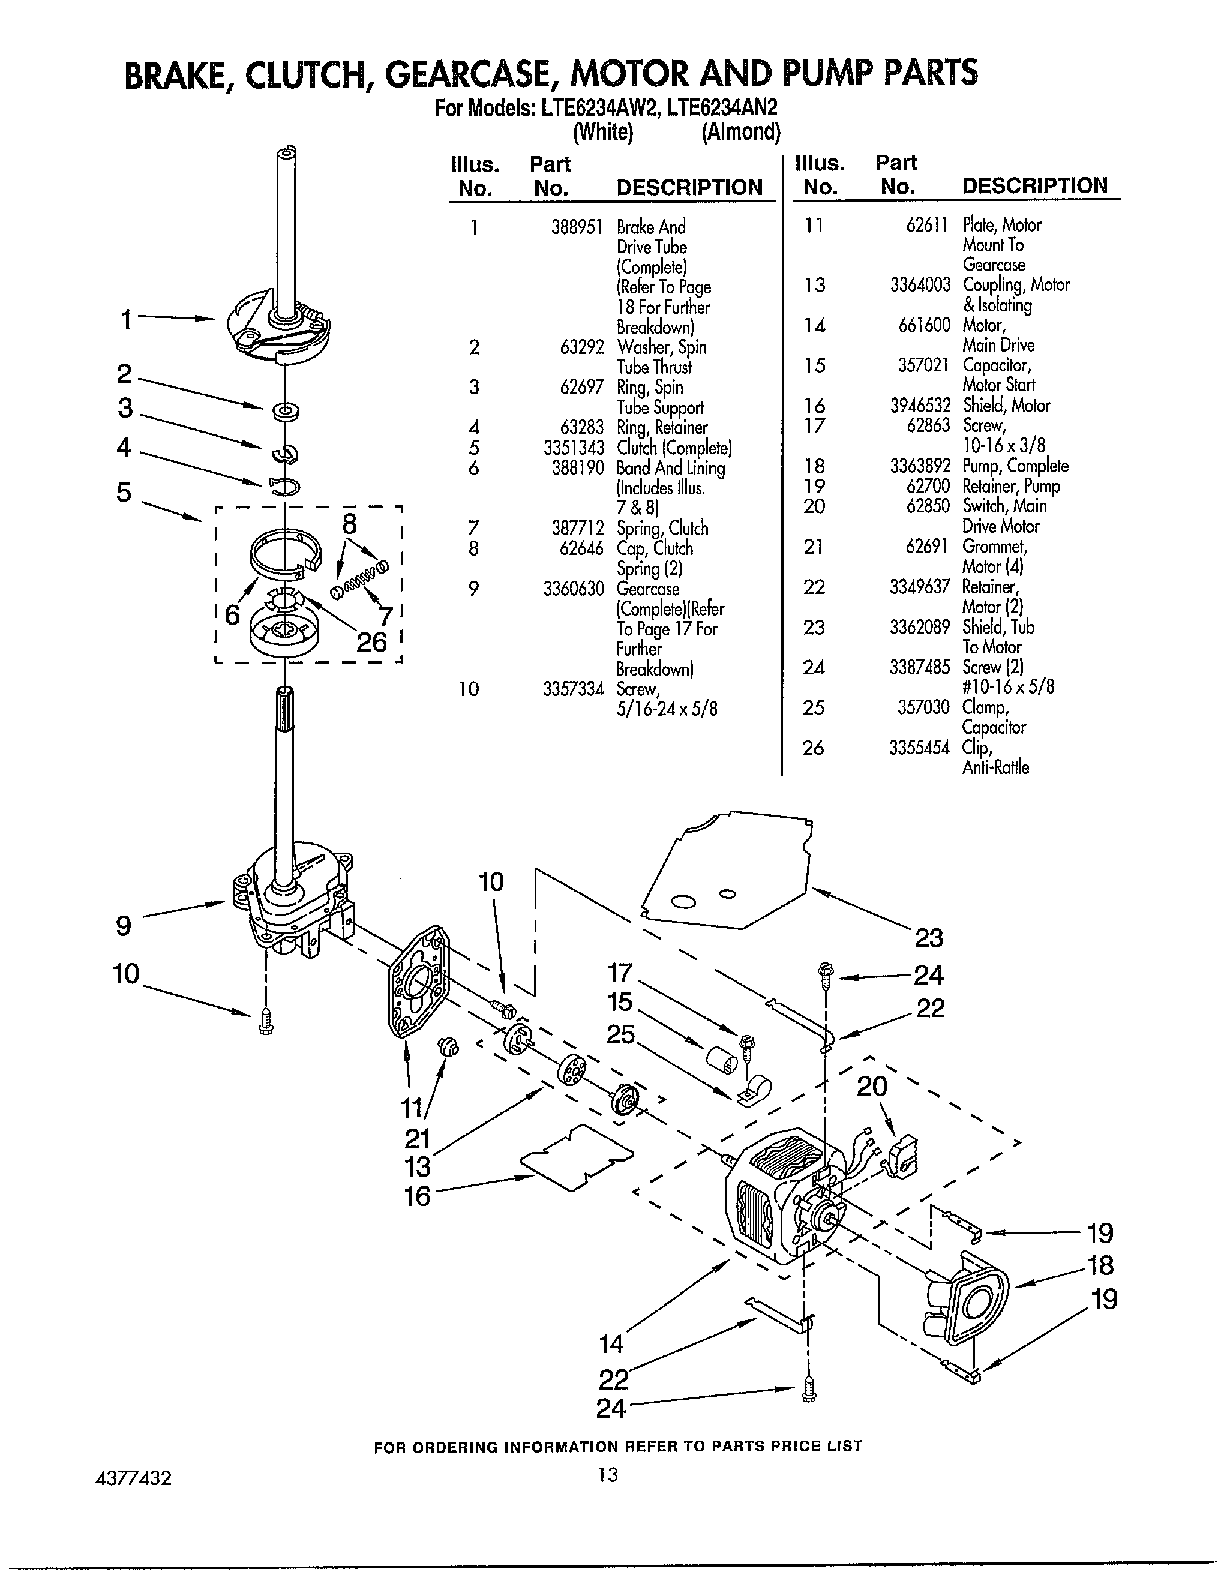 whirlpool lte6243an2 brake clutch and motor parts diagram [ 1224 x 1584 Pixel ]